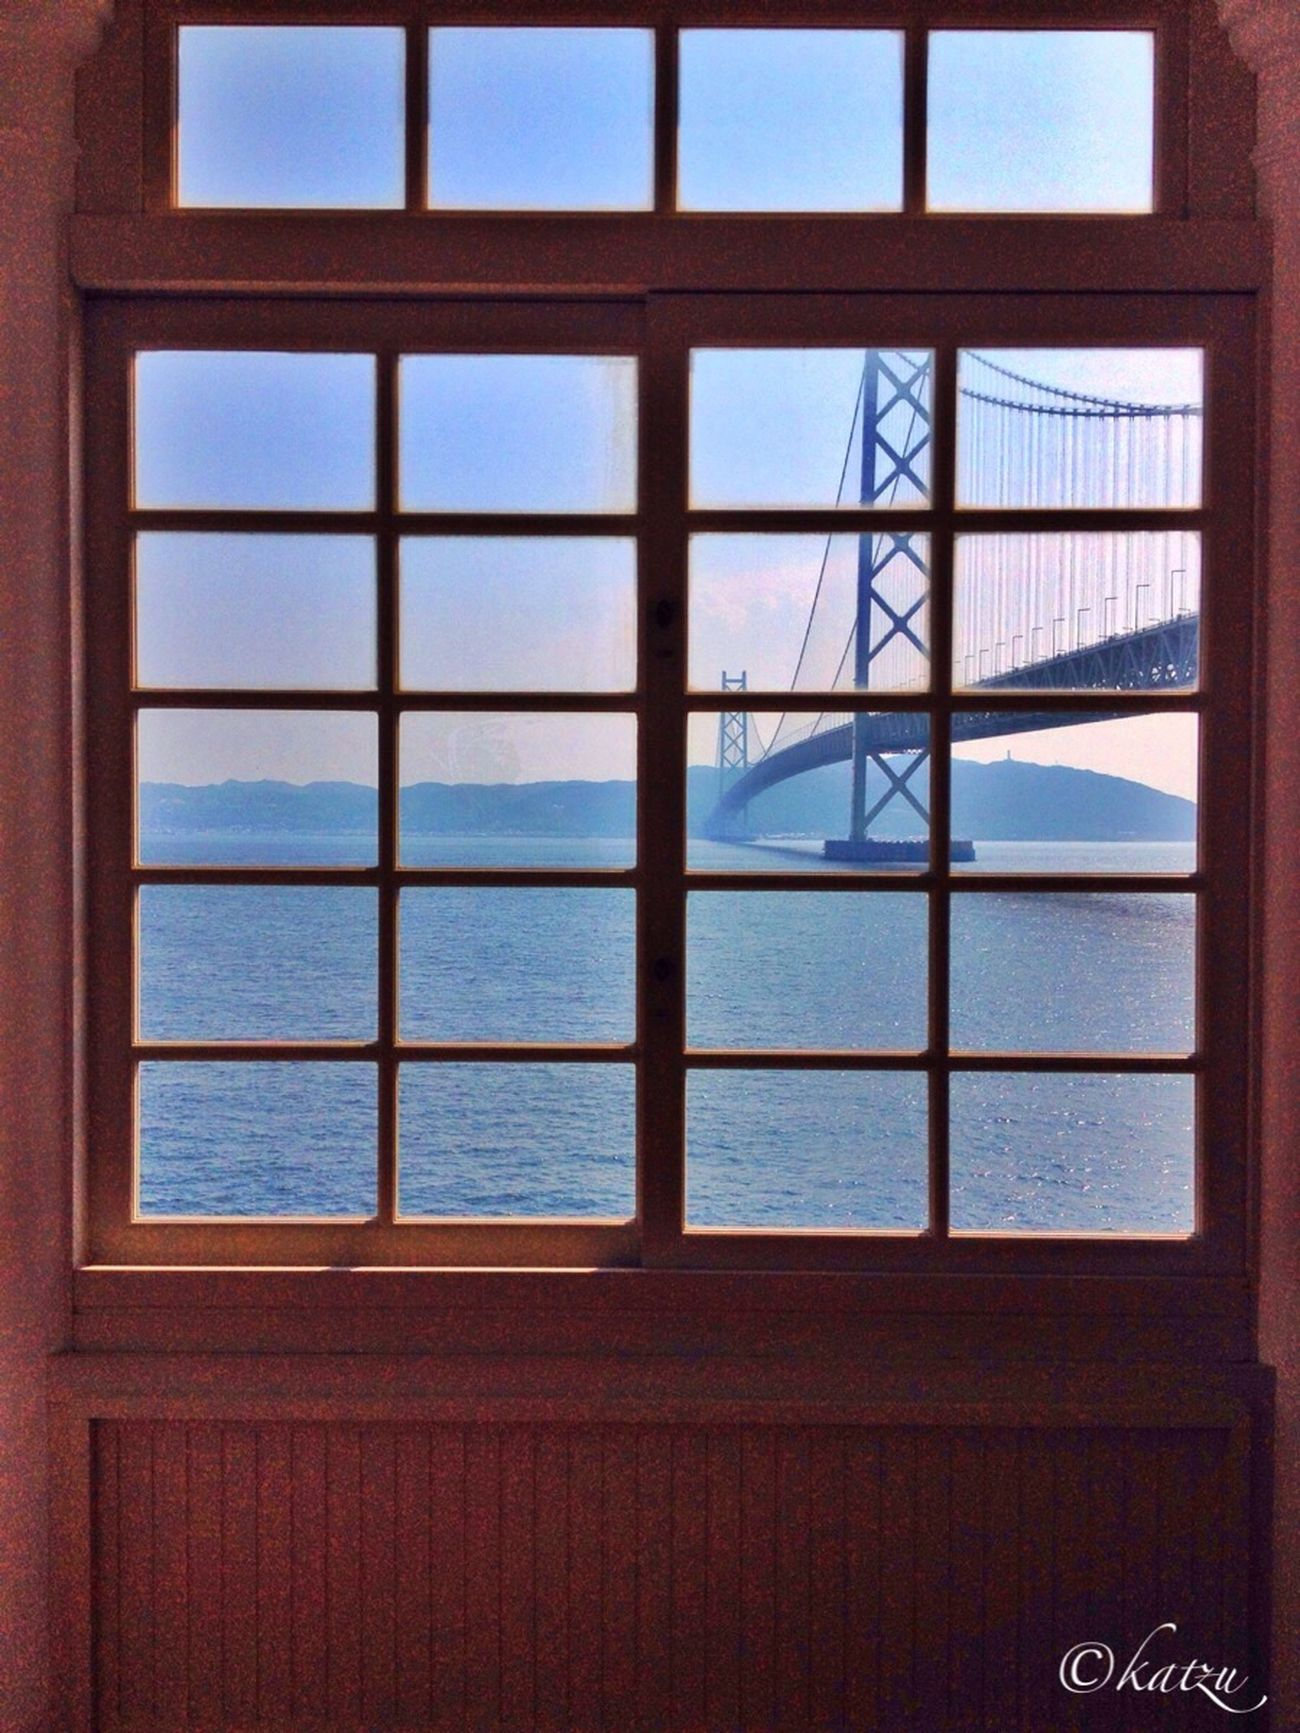 FromTheWindow Bridge